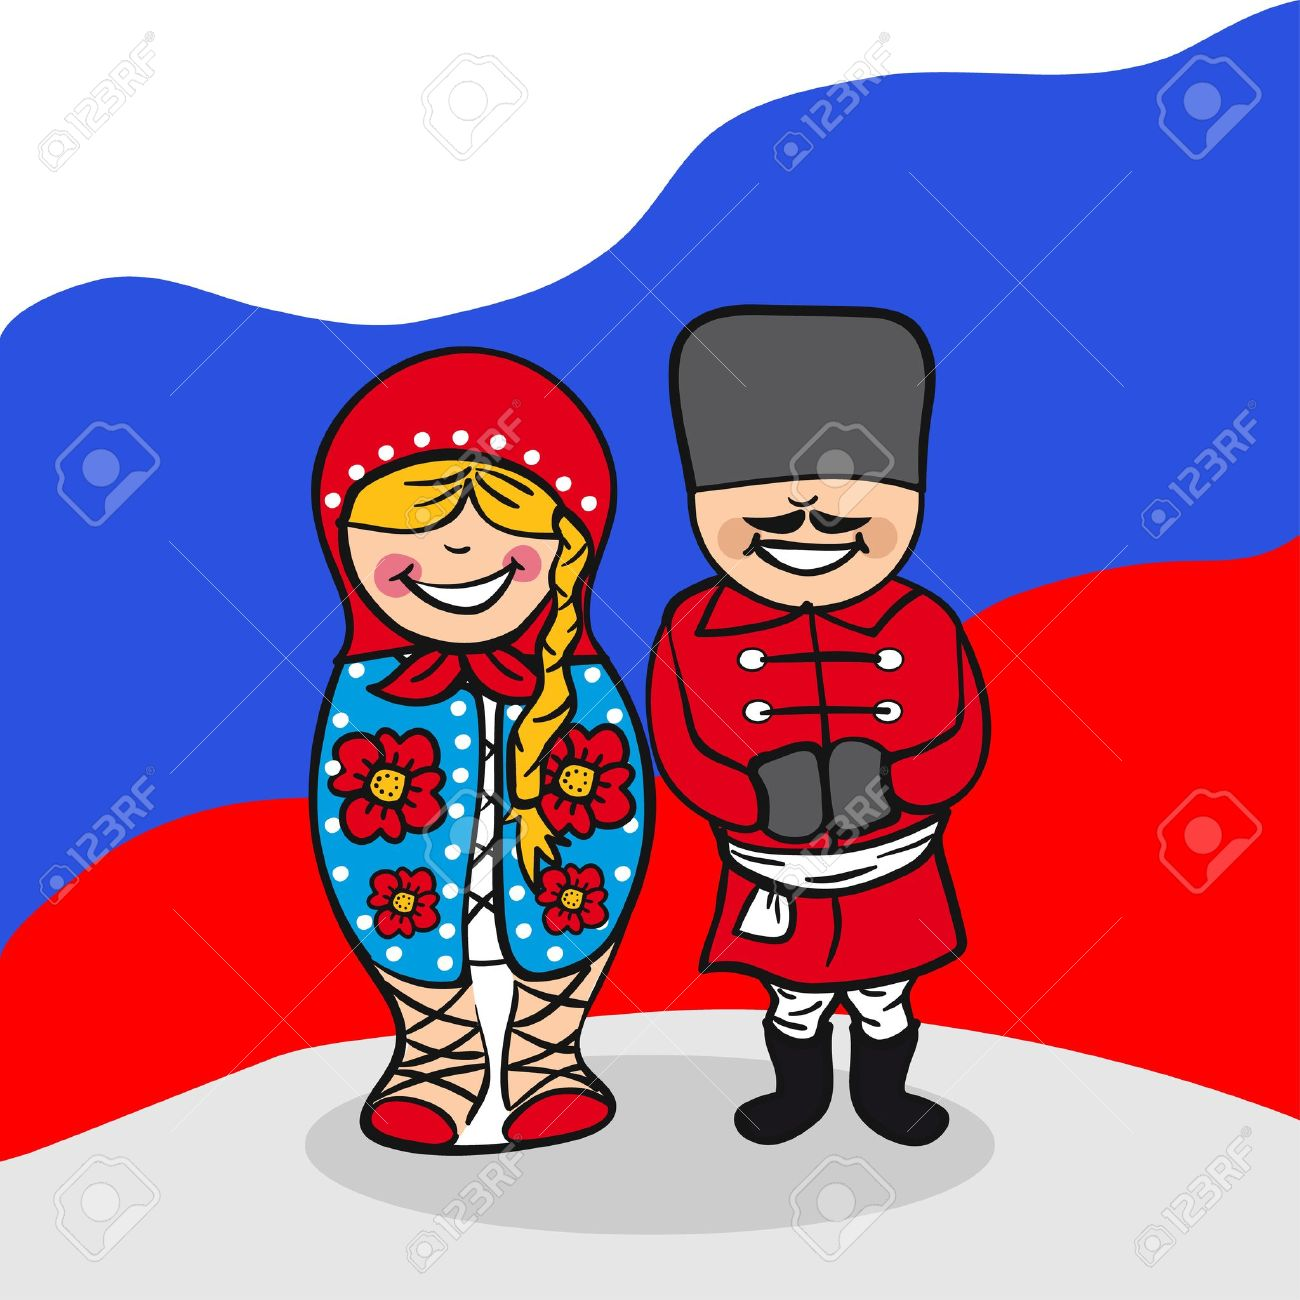 Russian man and woman cartoon couple with national flag background. Vector illustration layered for easy editing. Stock Vector - 20602890